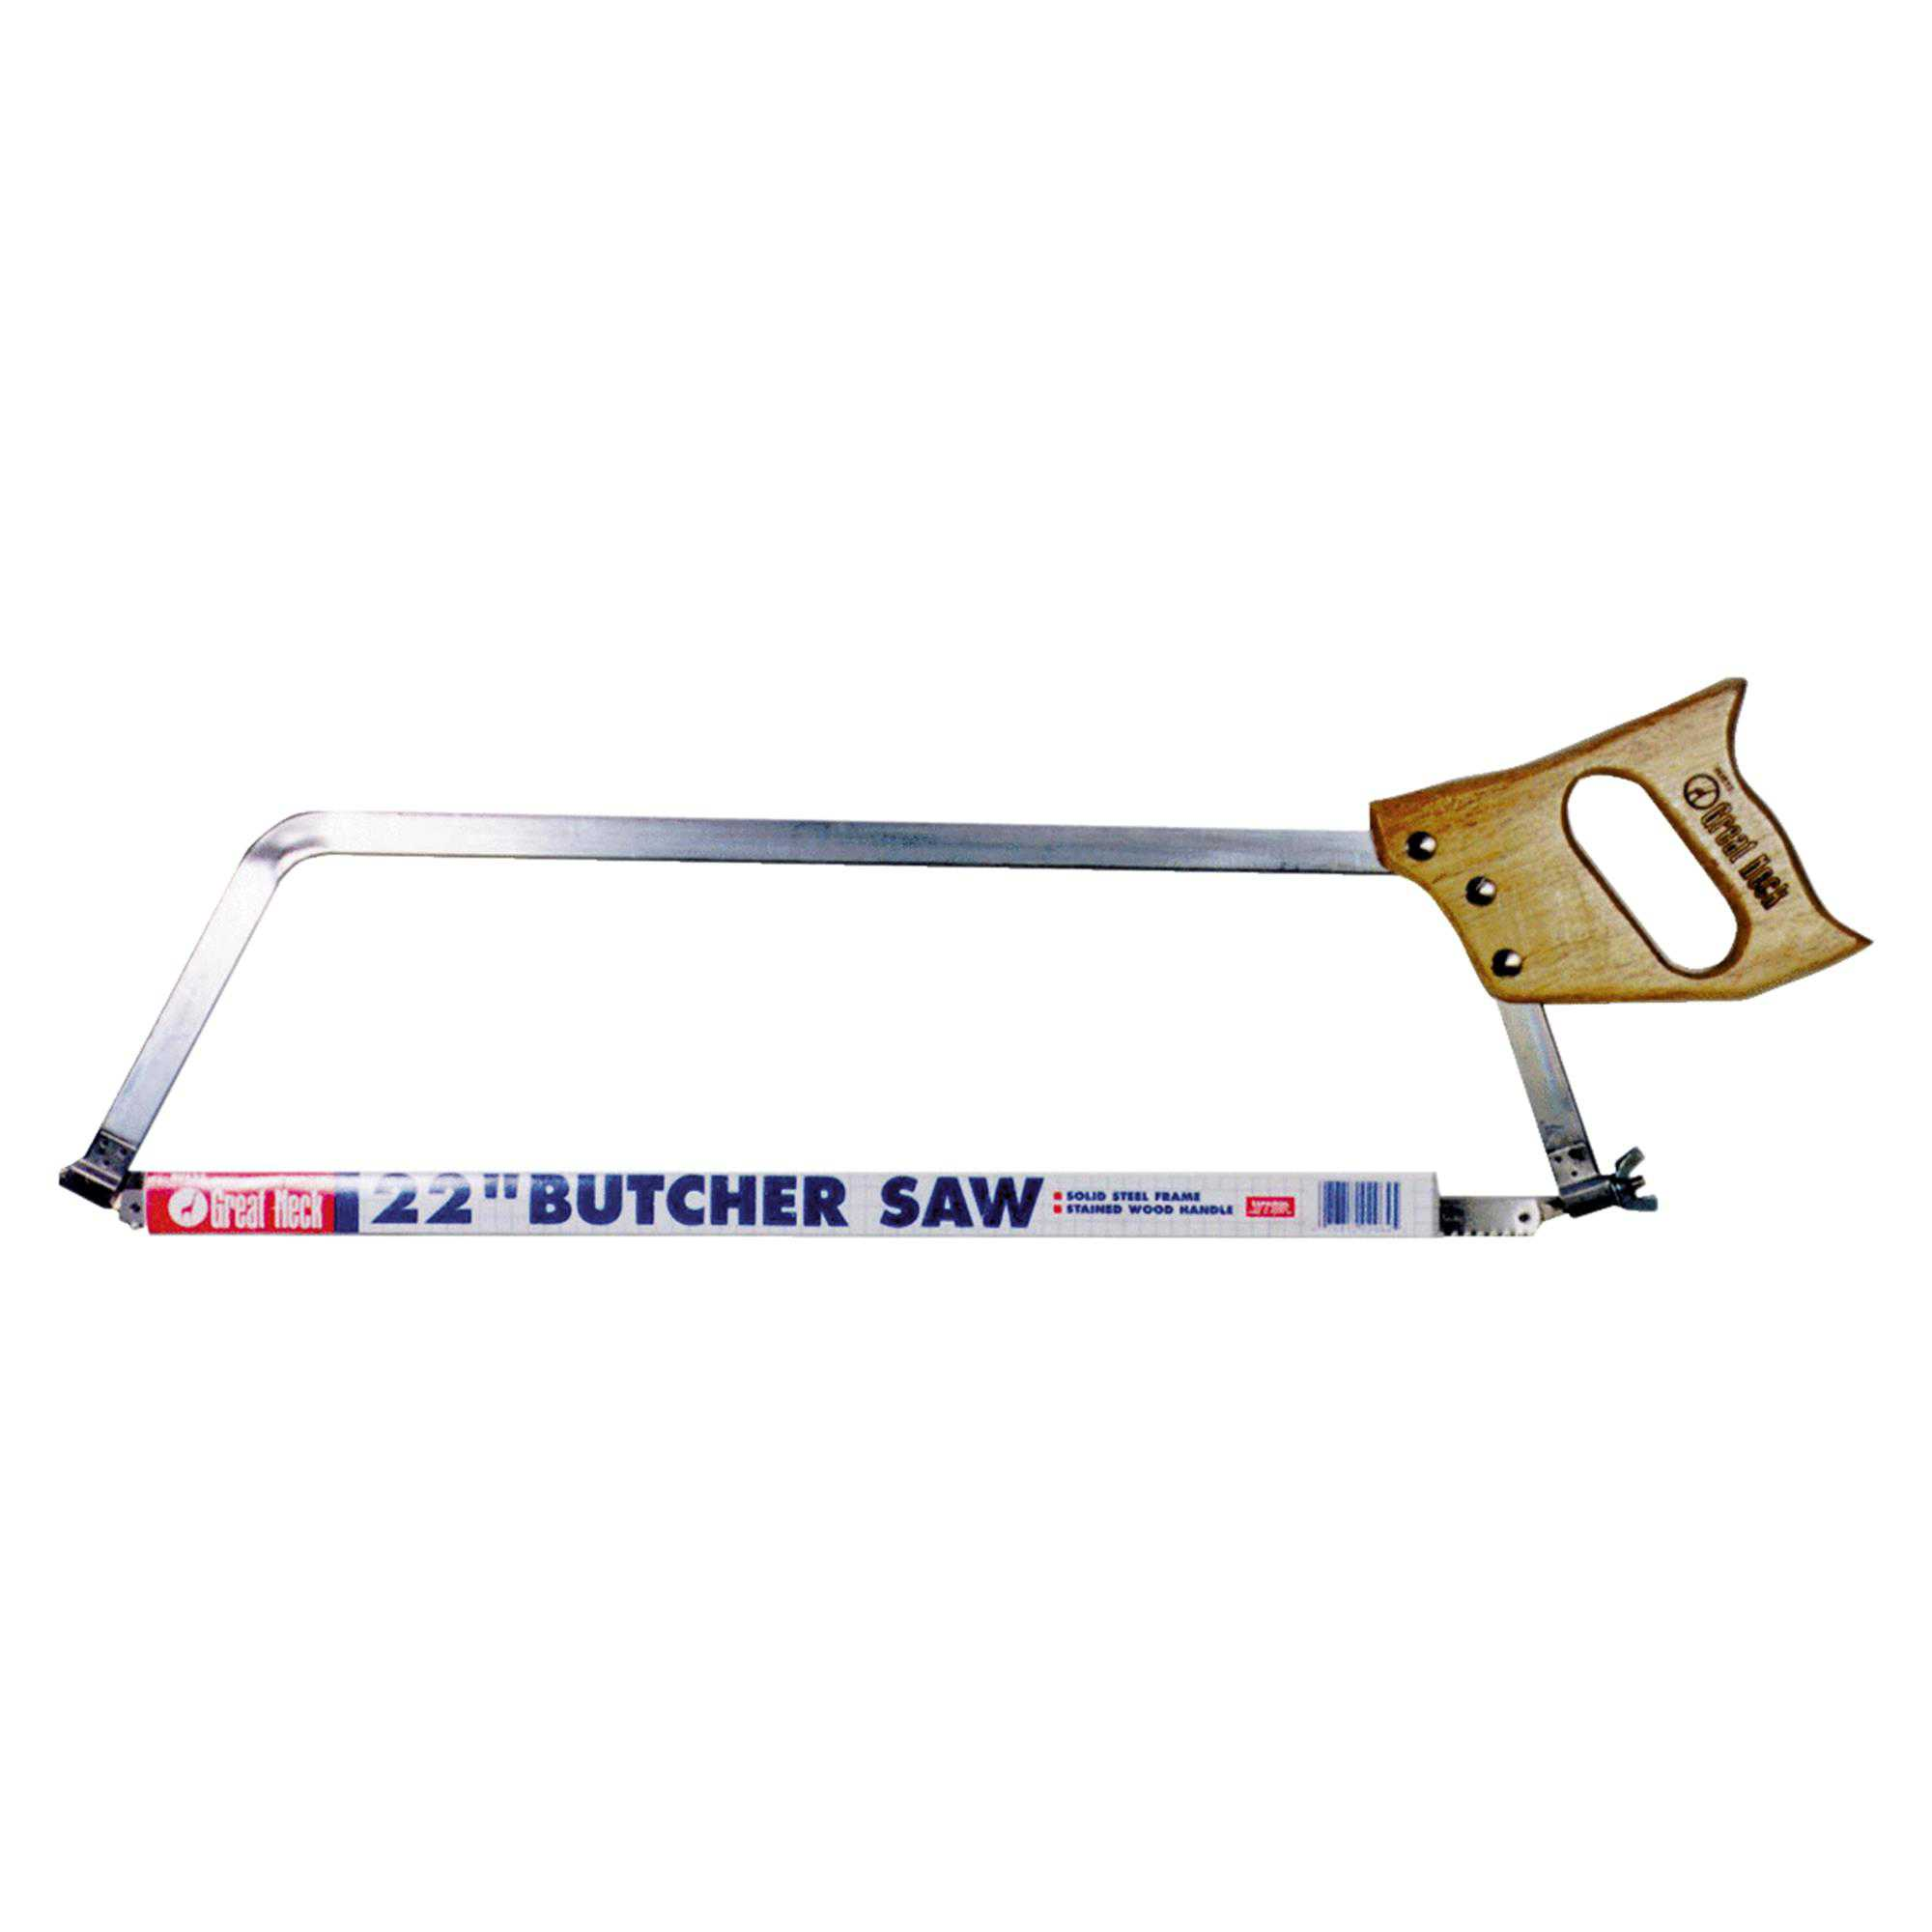 Great Neck 22' Butcher Saw